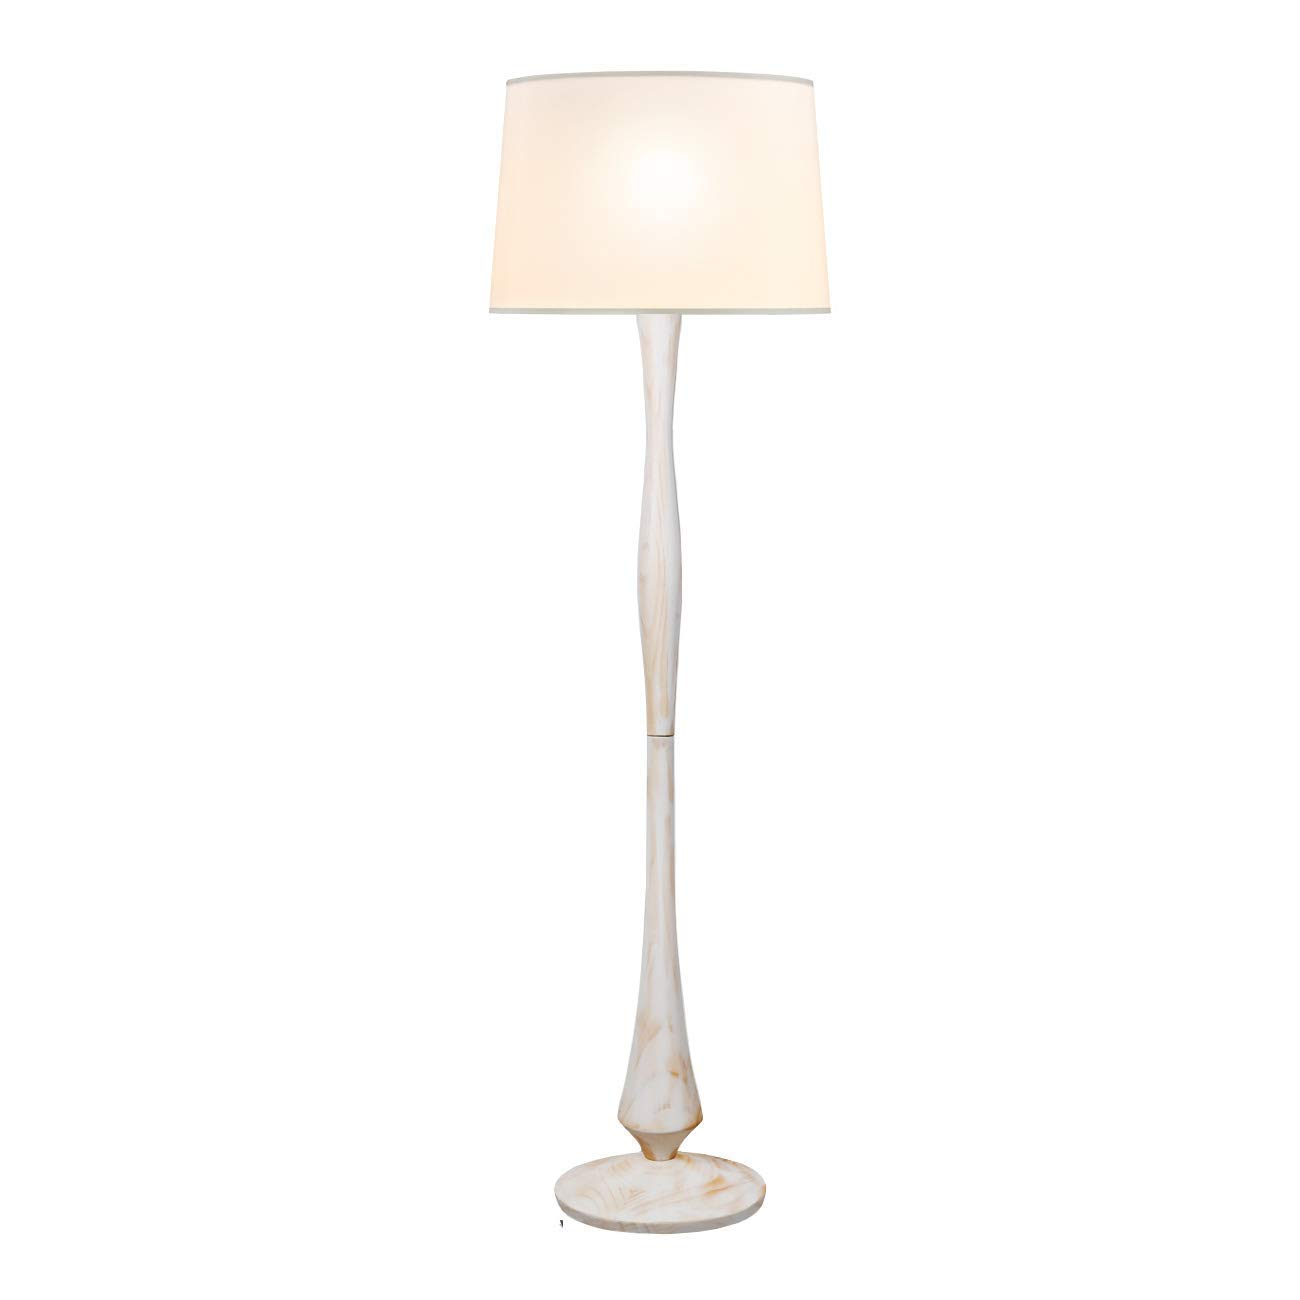 tomons White Washed Wood Floor Lamp with 8W LED Lamp for Bedroom Components Other FL2001US-W